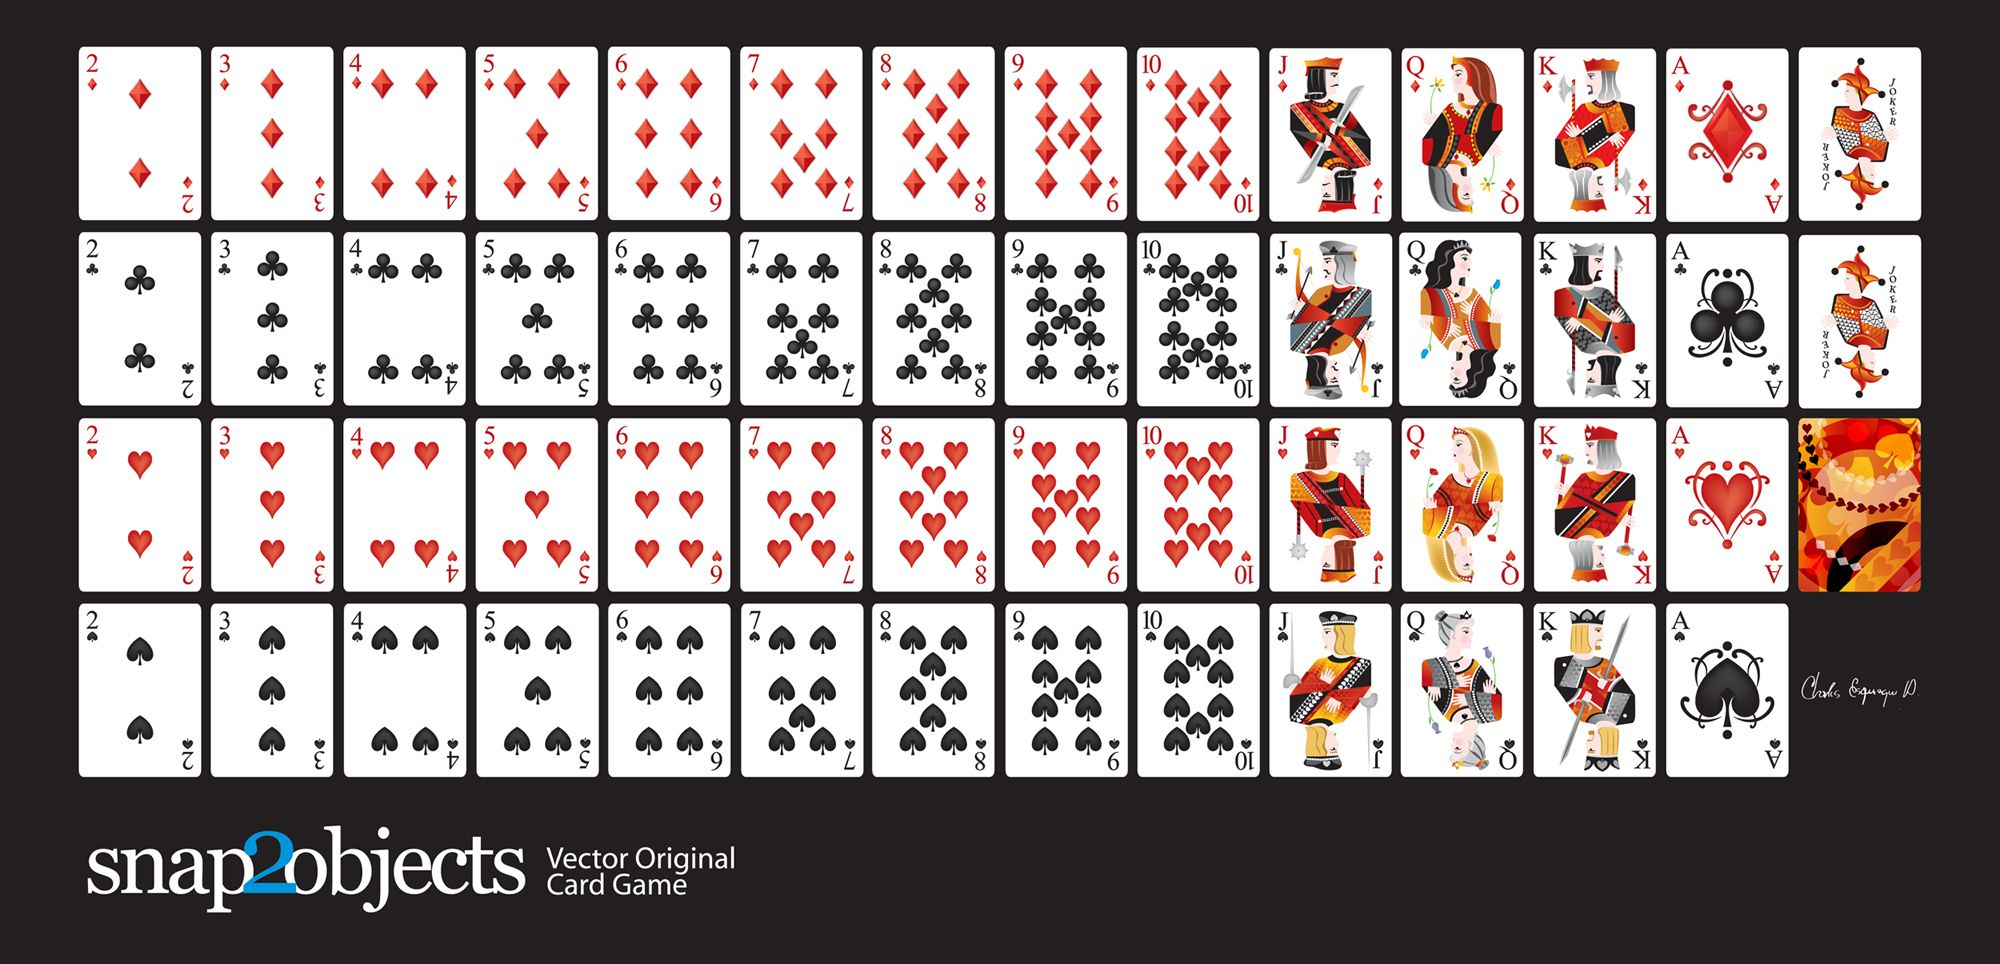 Free-Vector-Card-Deck | Silhouette Cameo | Pinterest | Printable - Free Printable Deck Of Cards